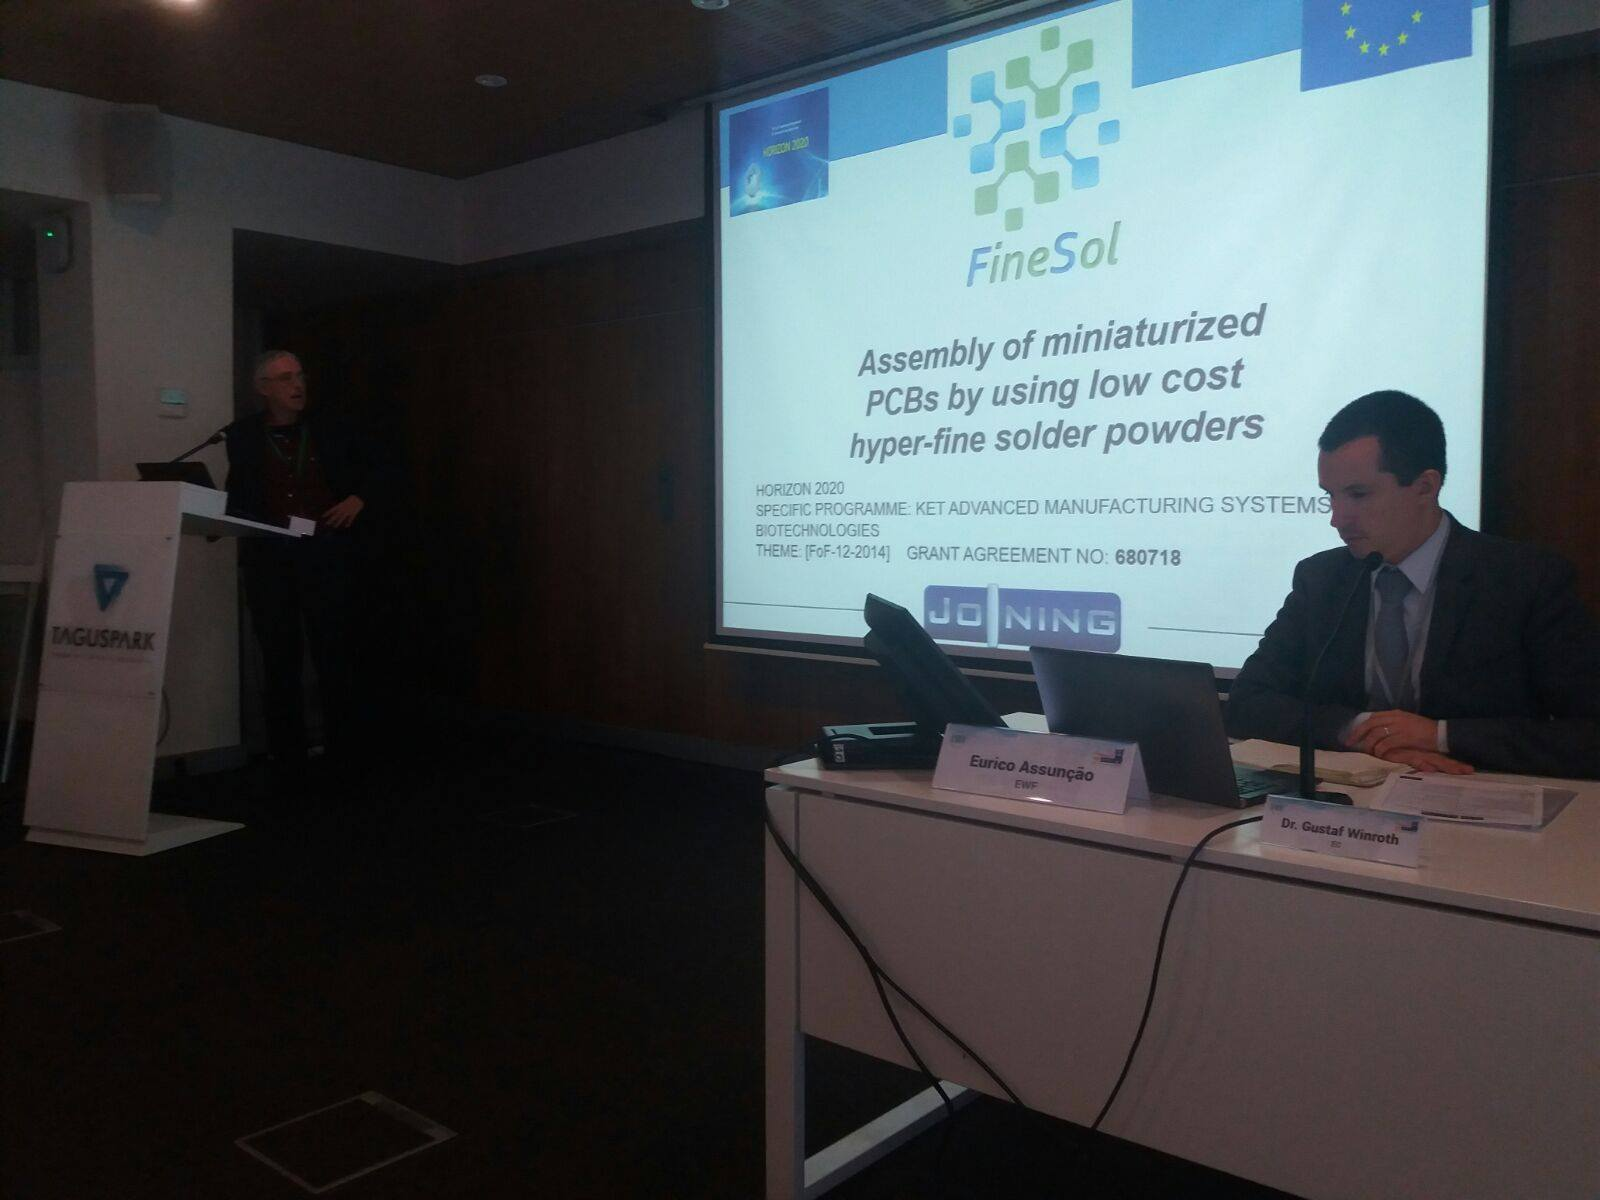 FineSol project presented to the Joining Sub-Platform stakeholders